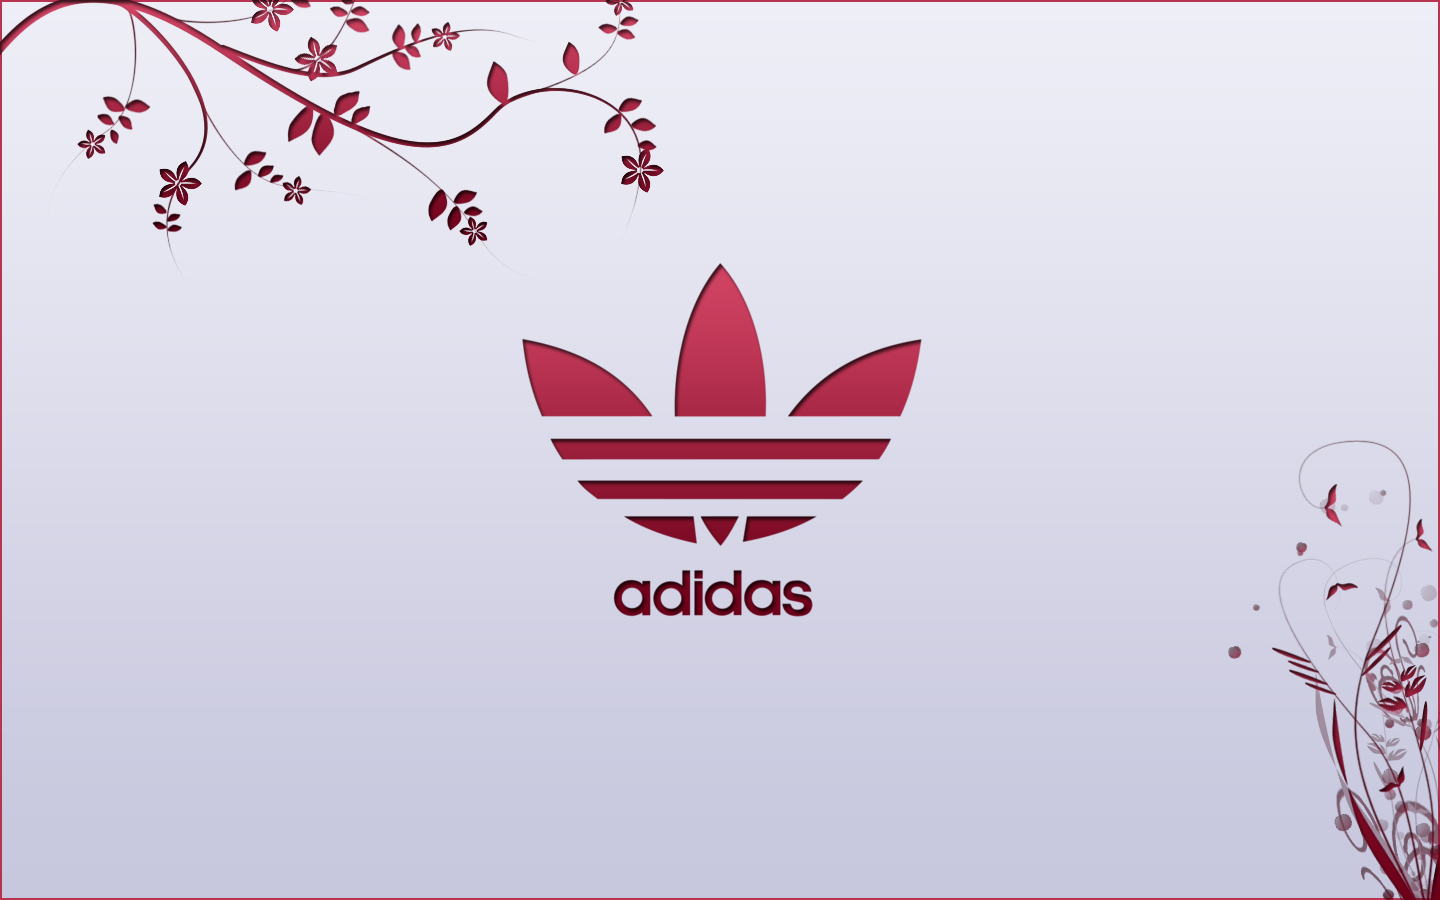 airplane wallpaper hd widescreen with Adidas Wallpaper Floral on Beautiful 3d Ball Wallpaper further 61663 Colorful Line On Black Background also Cute Baby Latest Hd Image Wallpaper Free Download additionally Big as well Gautama Buddha Bhagwan.